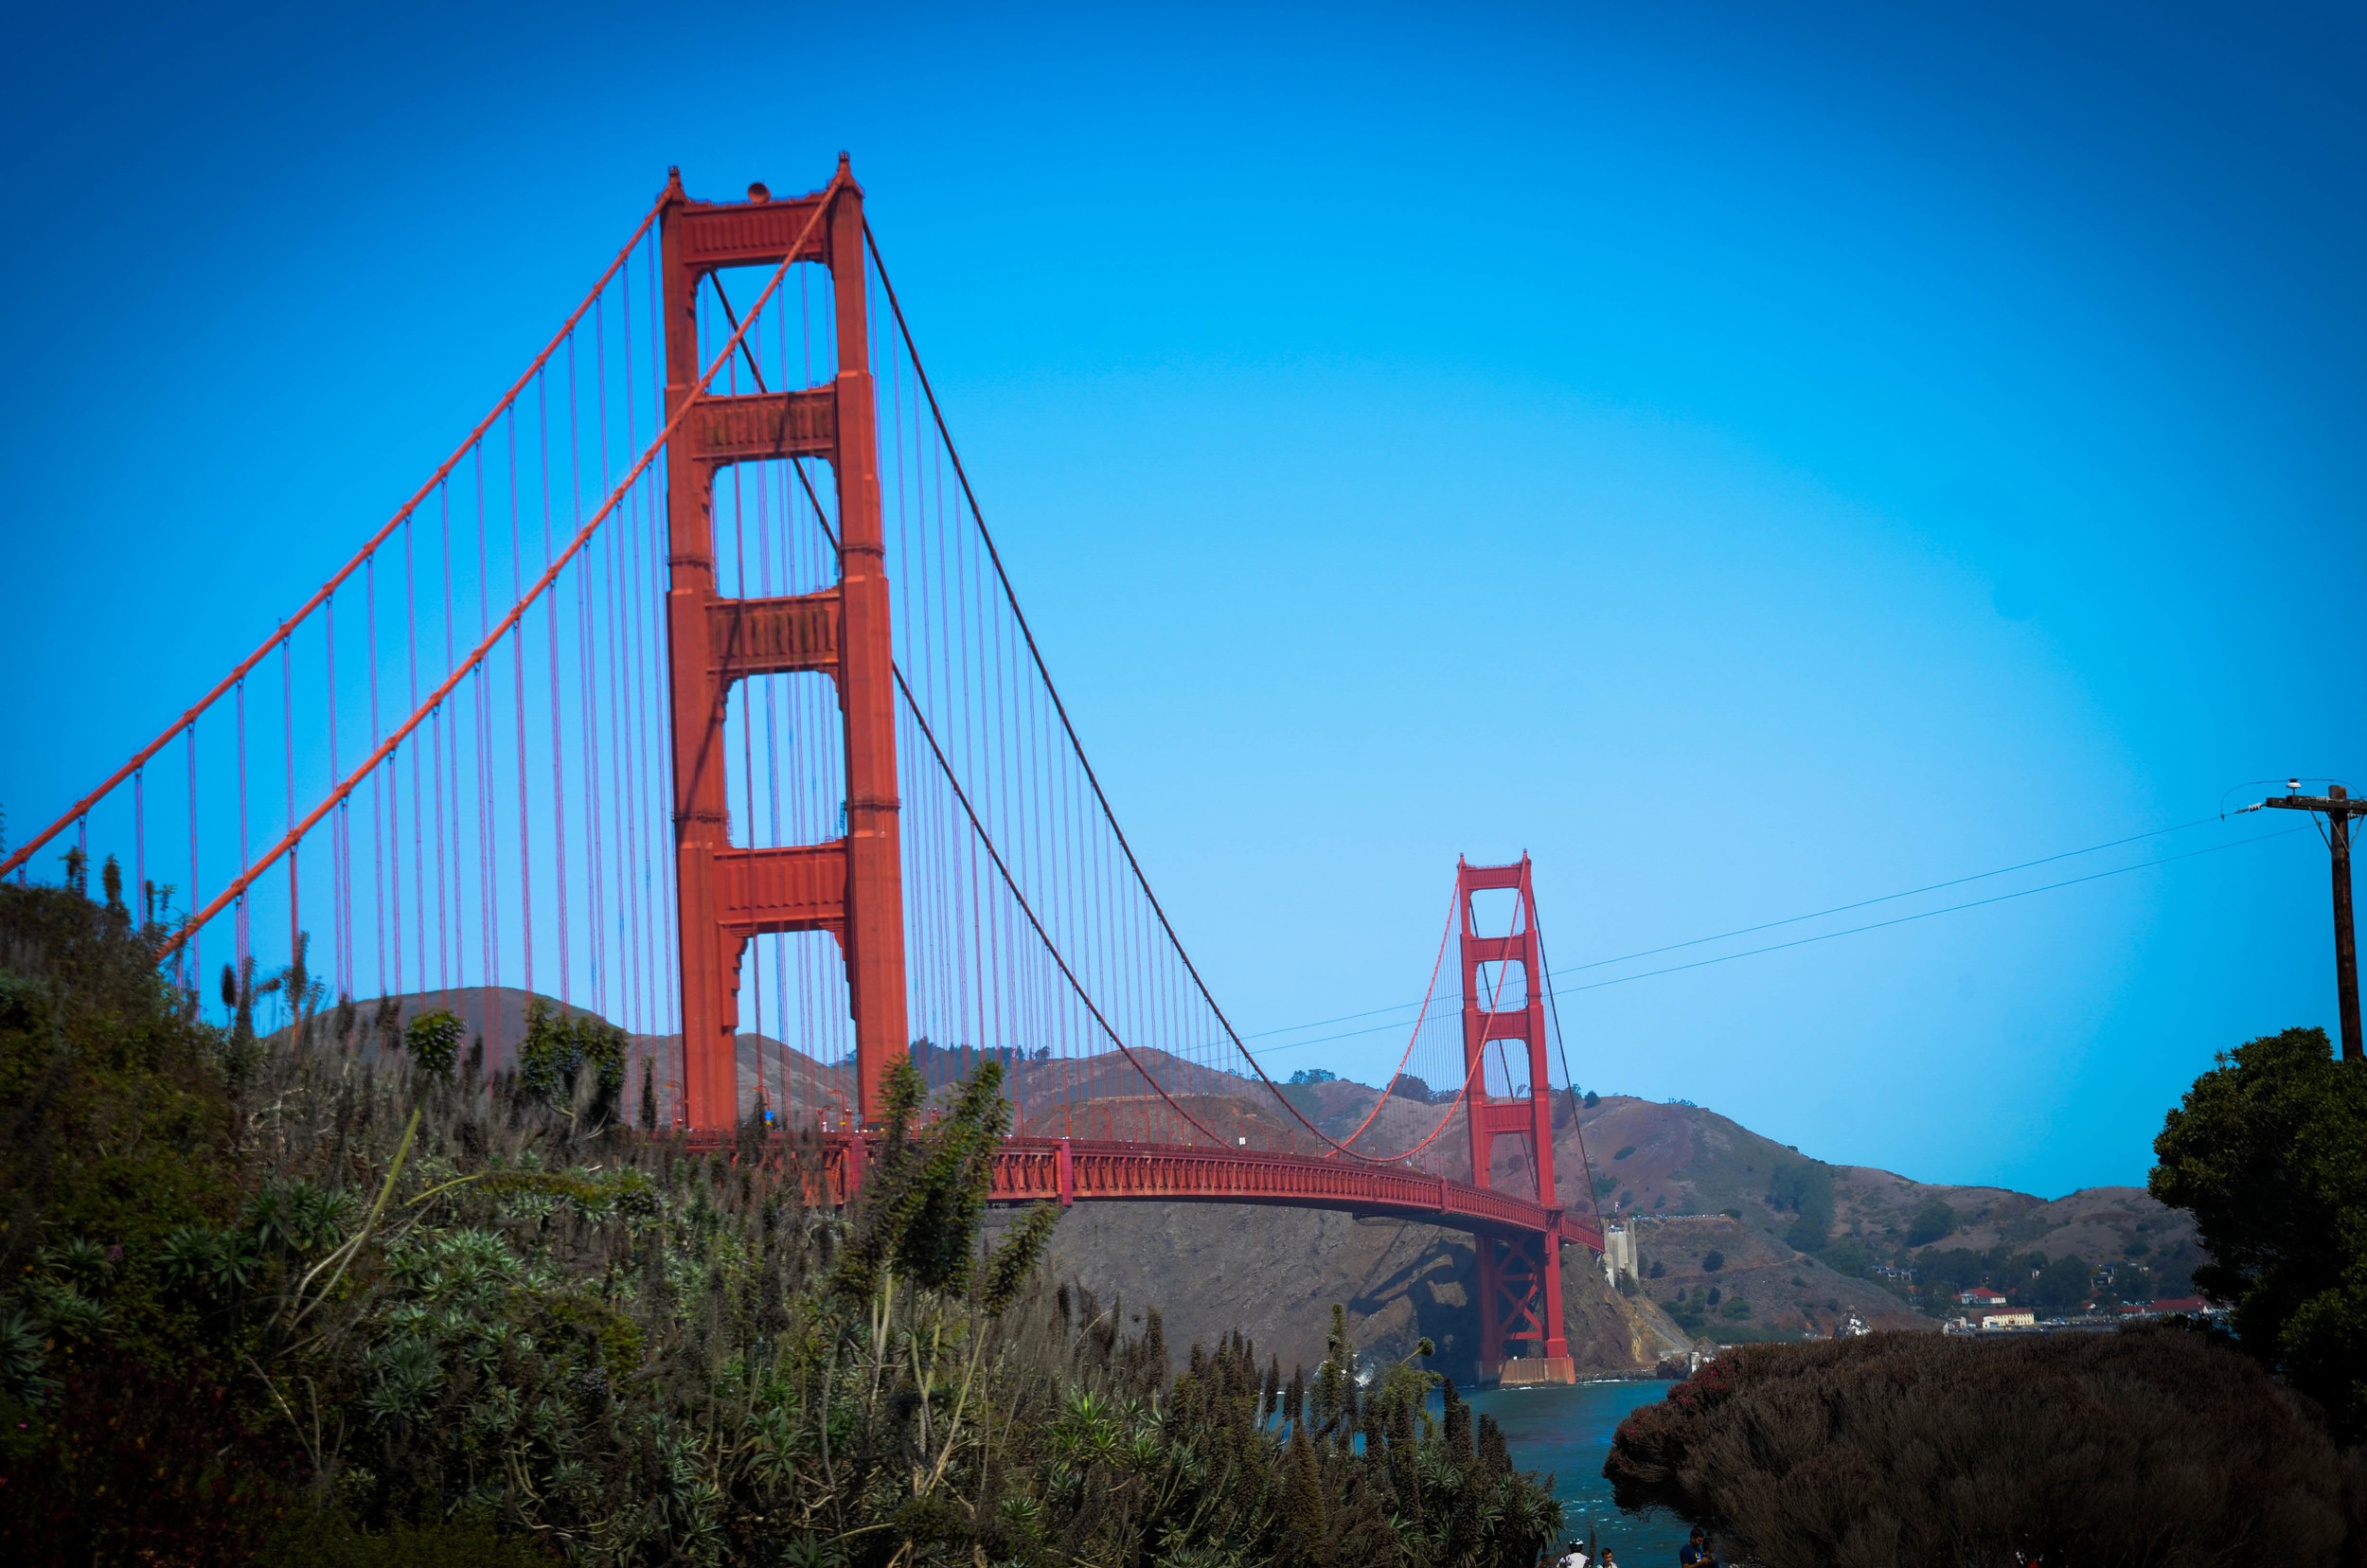 Our last stop was San Francisco, so it was only natural that we checked out the Golden Gate Bridge.